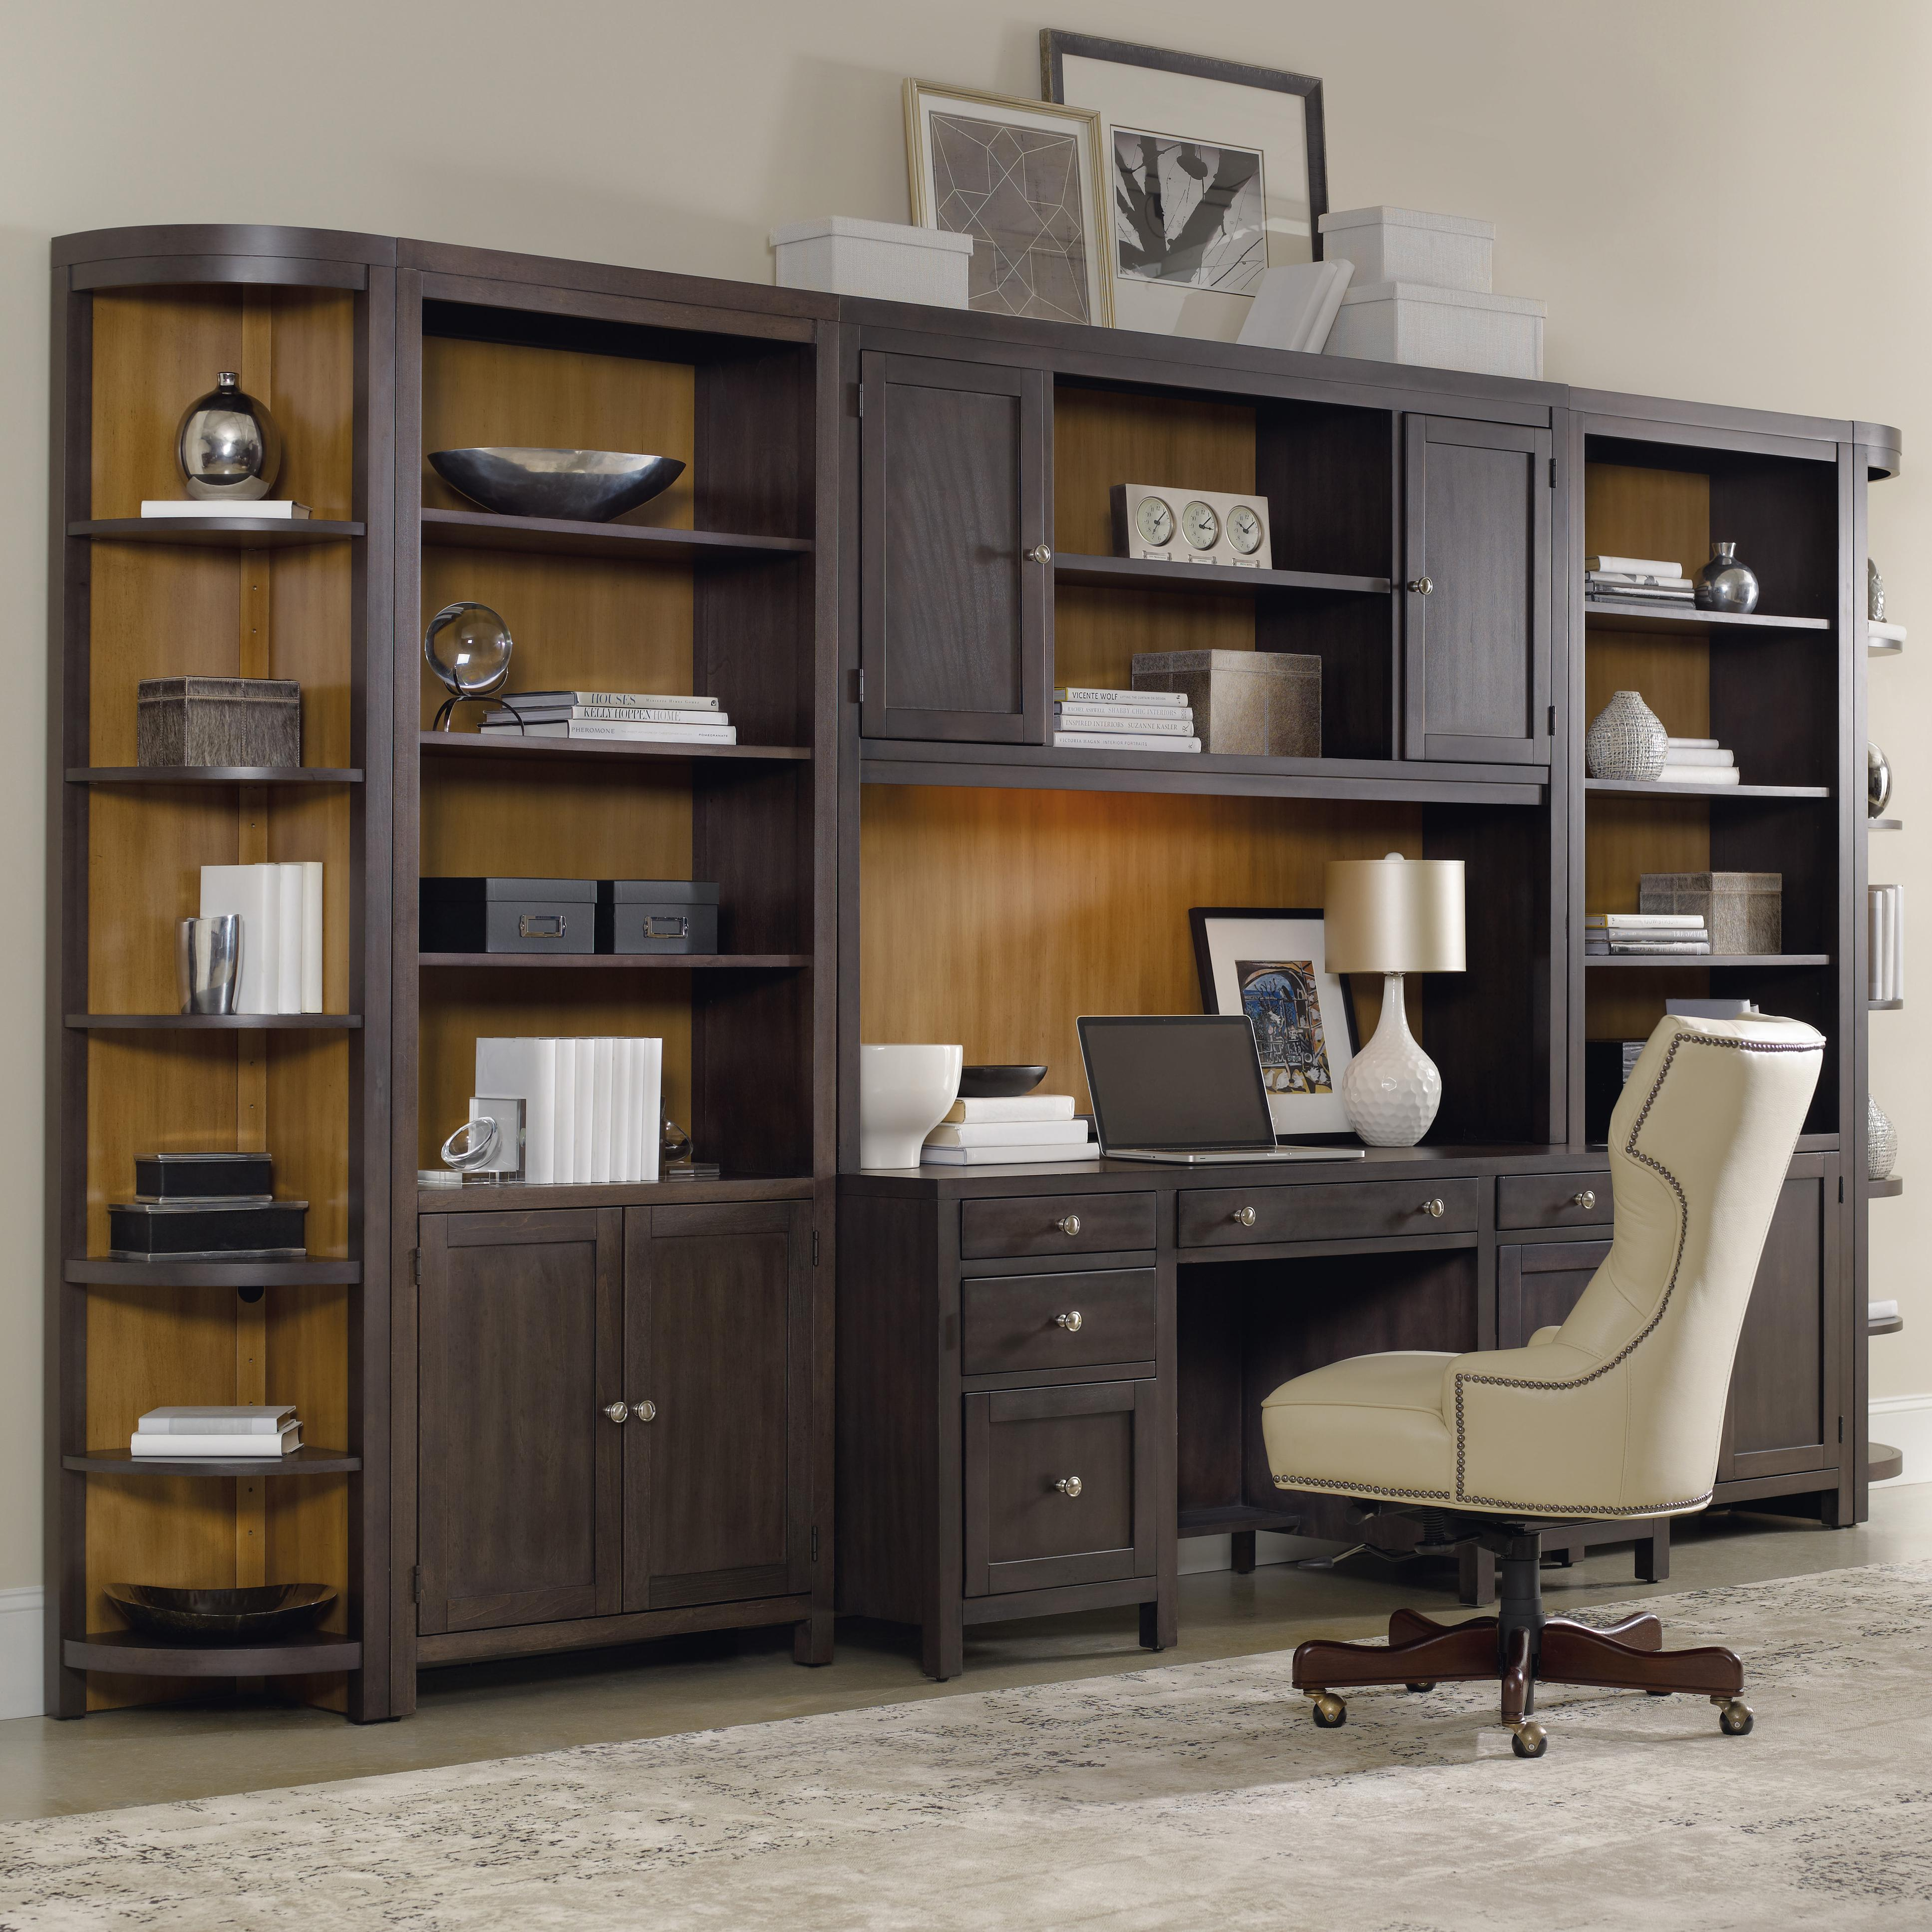 Phenomenal South Park Home Office Wall Unit With Computer Credenza By Hooker Furniture At Dunk Bright Furniture Home Interior And Landscaping Spoatsignezvosmurscom